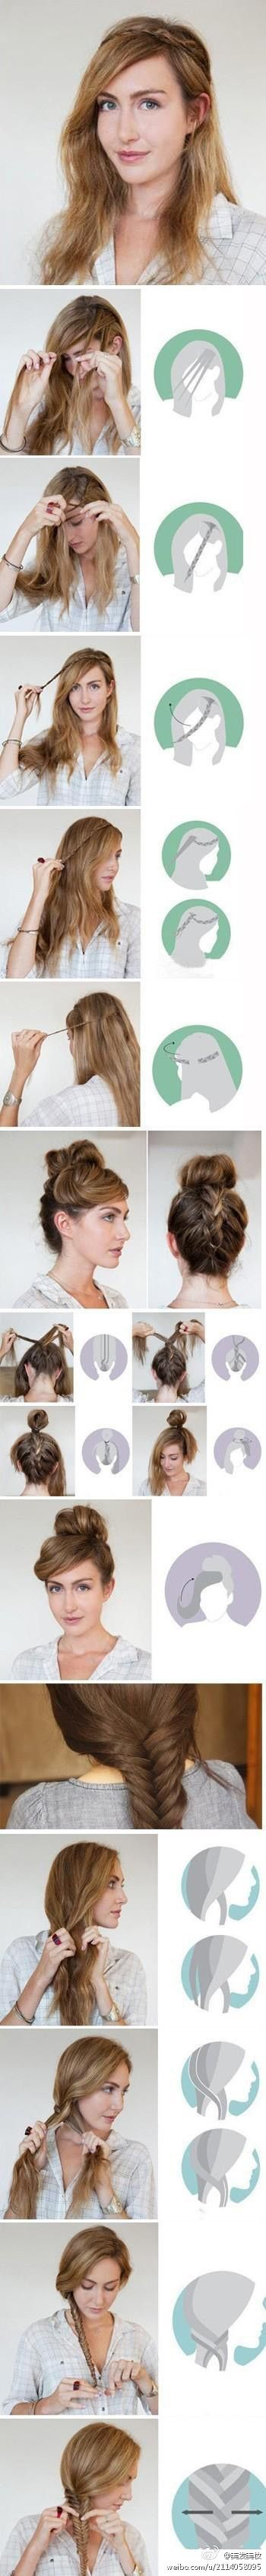 peinados :): Hair Ideas, Hair Tutorials, Hairstyles, Hair Styles, Hairdos, Makeup, Hair Do